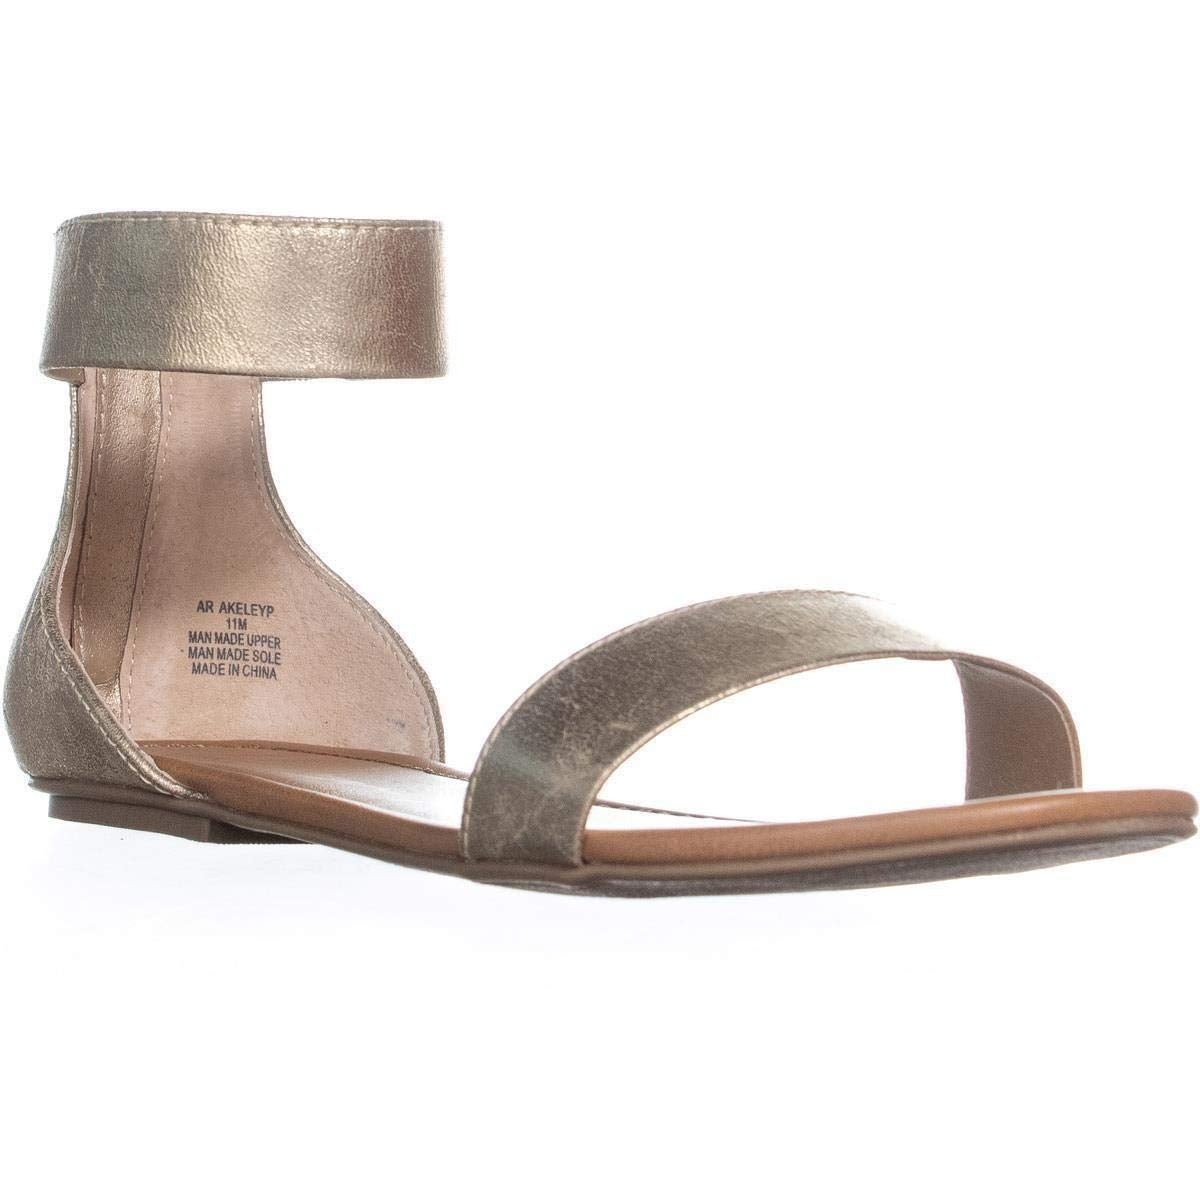 f9c54bf30869 Buy New Products - American Rag Women s Sandals Online at Overstock ...